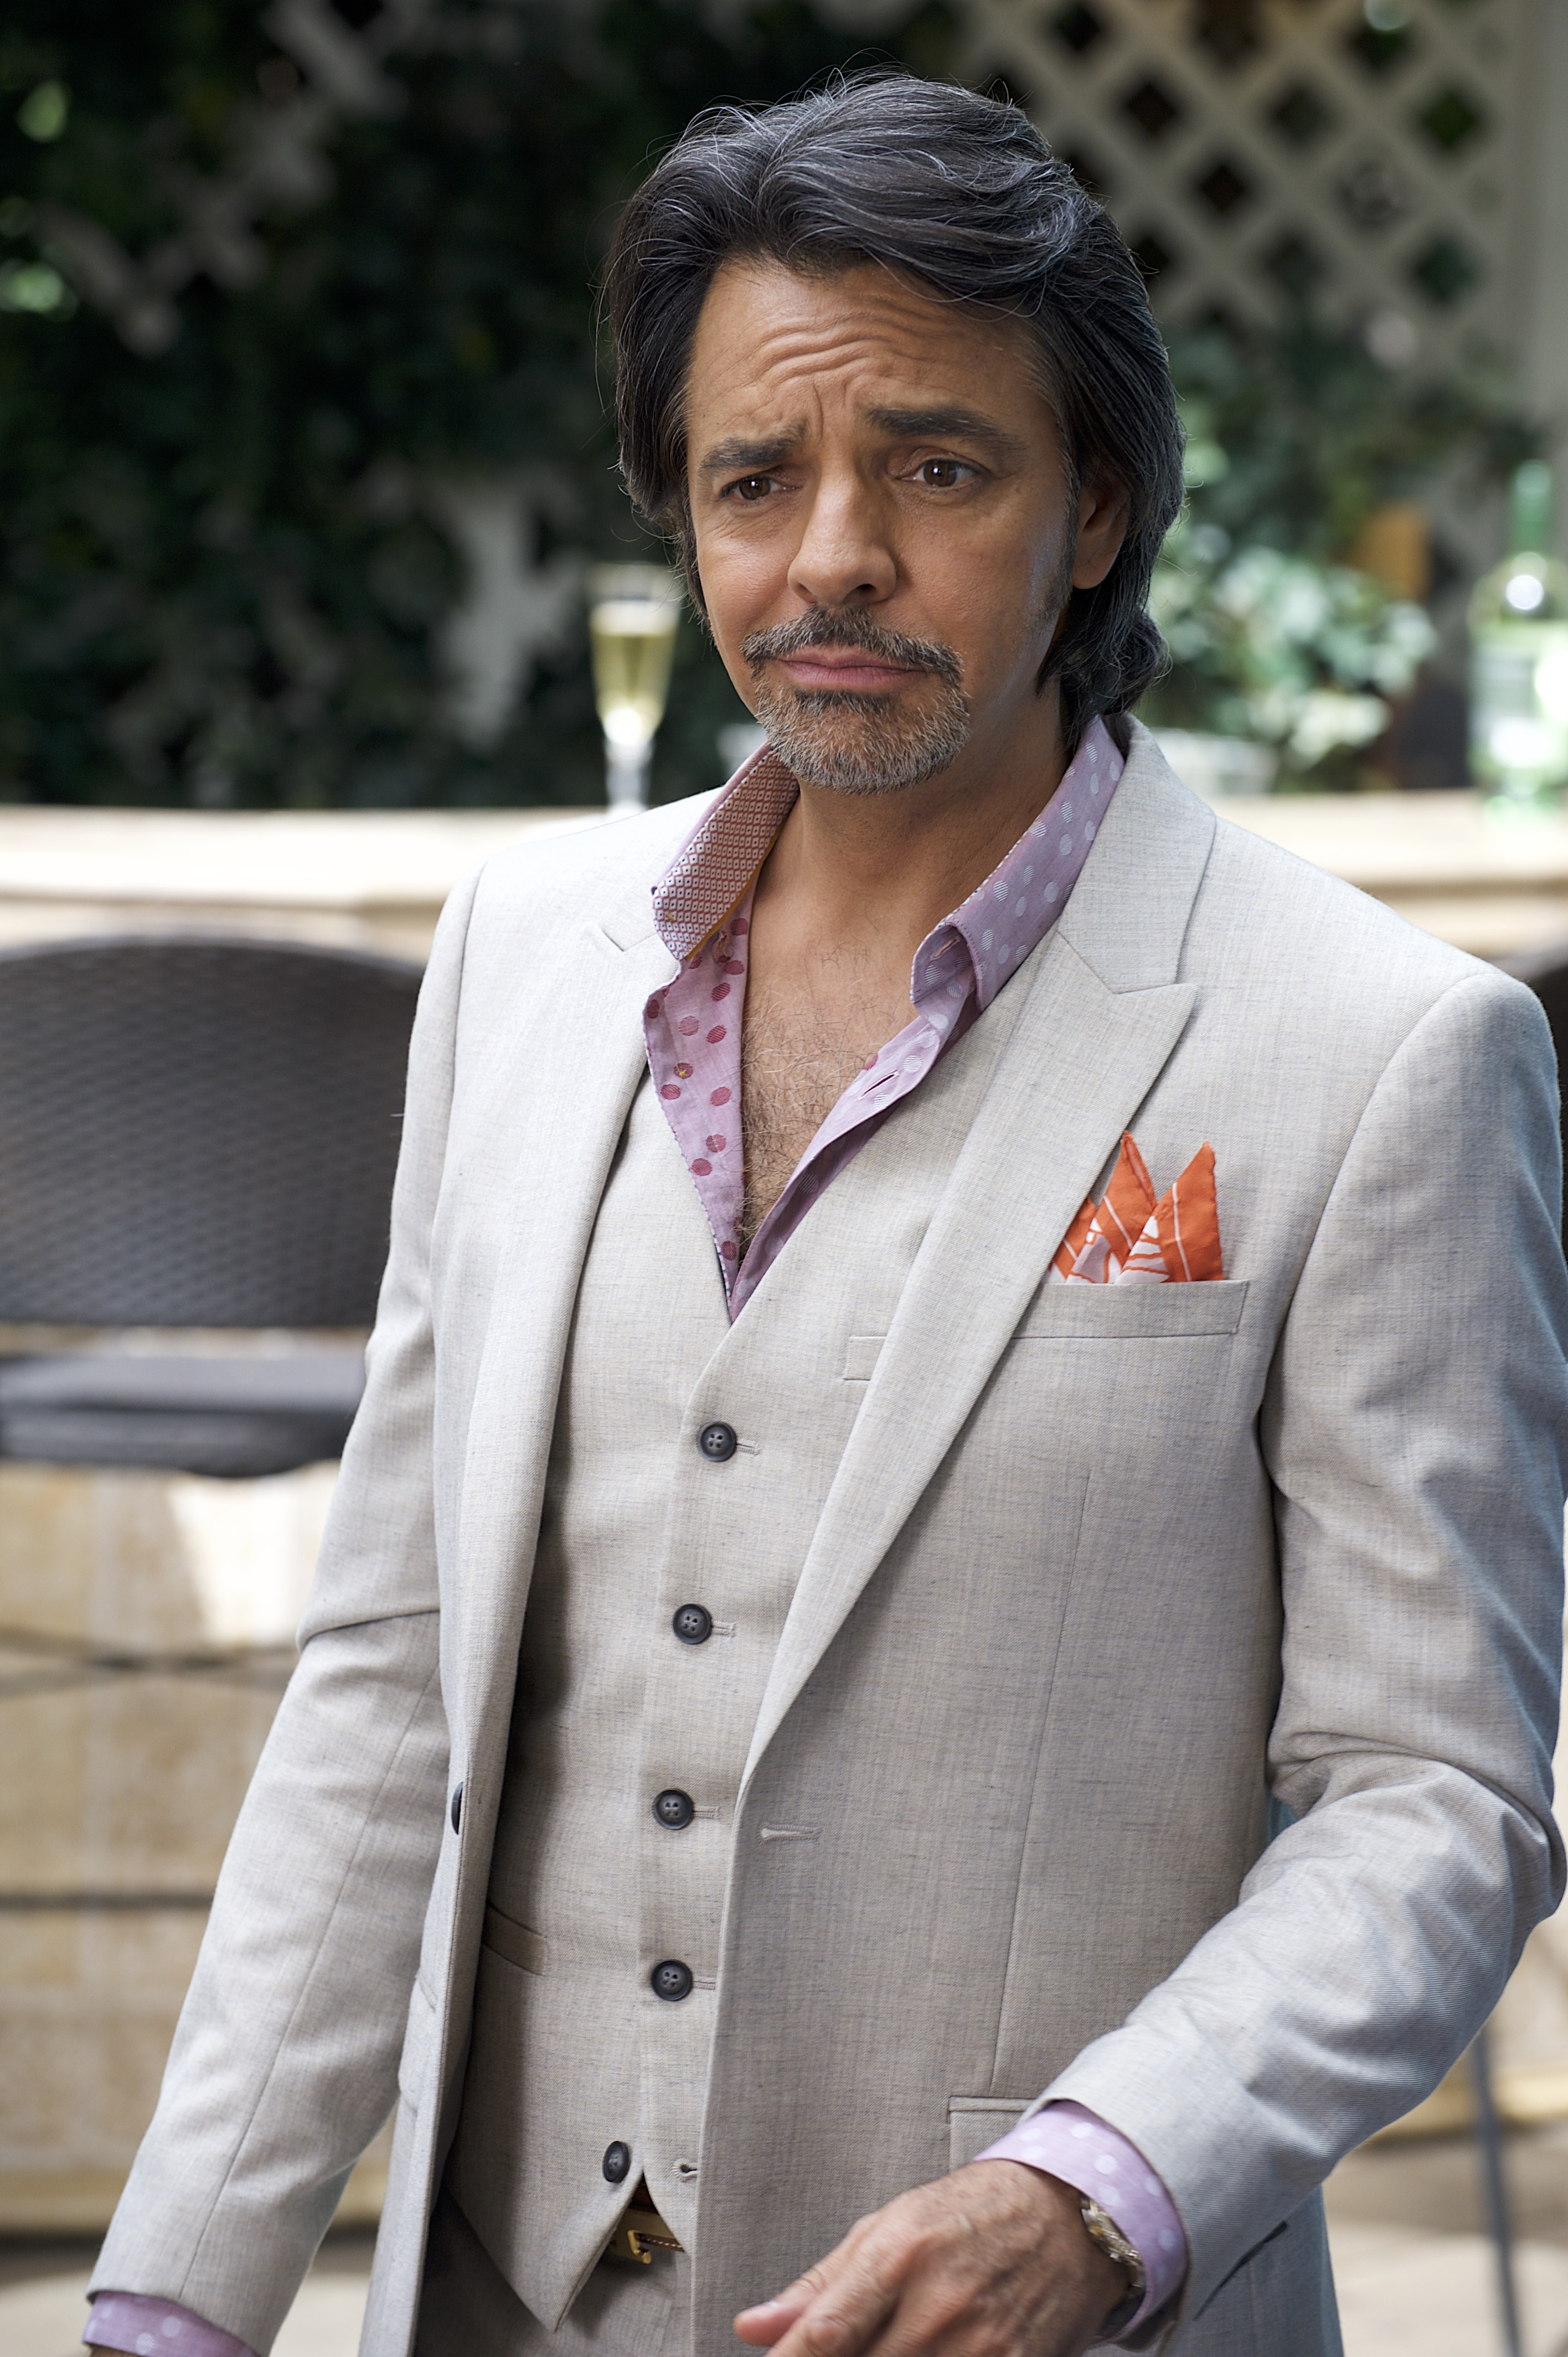 Eugenio Derbez in How to Be a Latin Lover (2017)